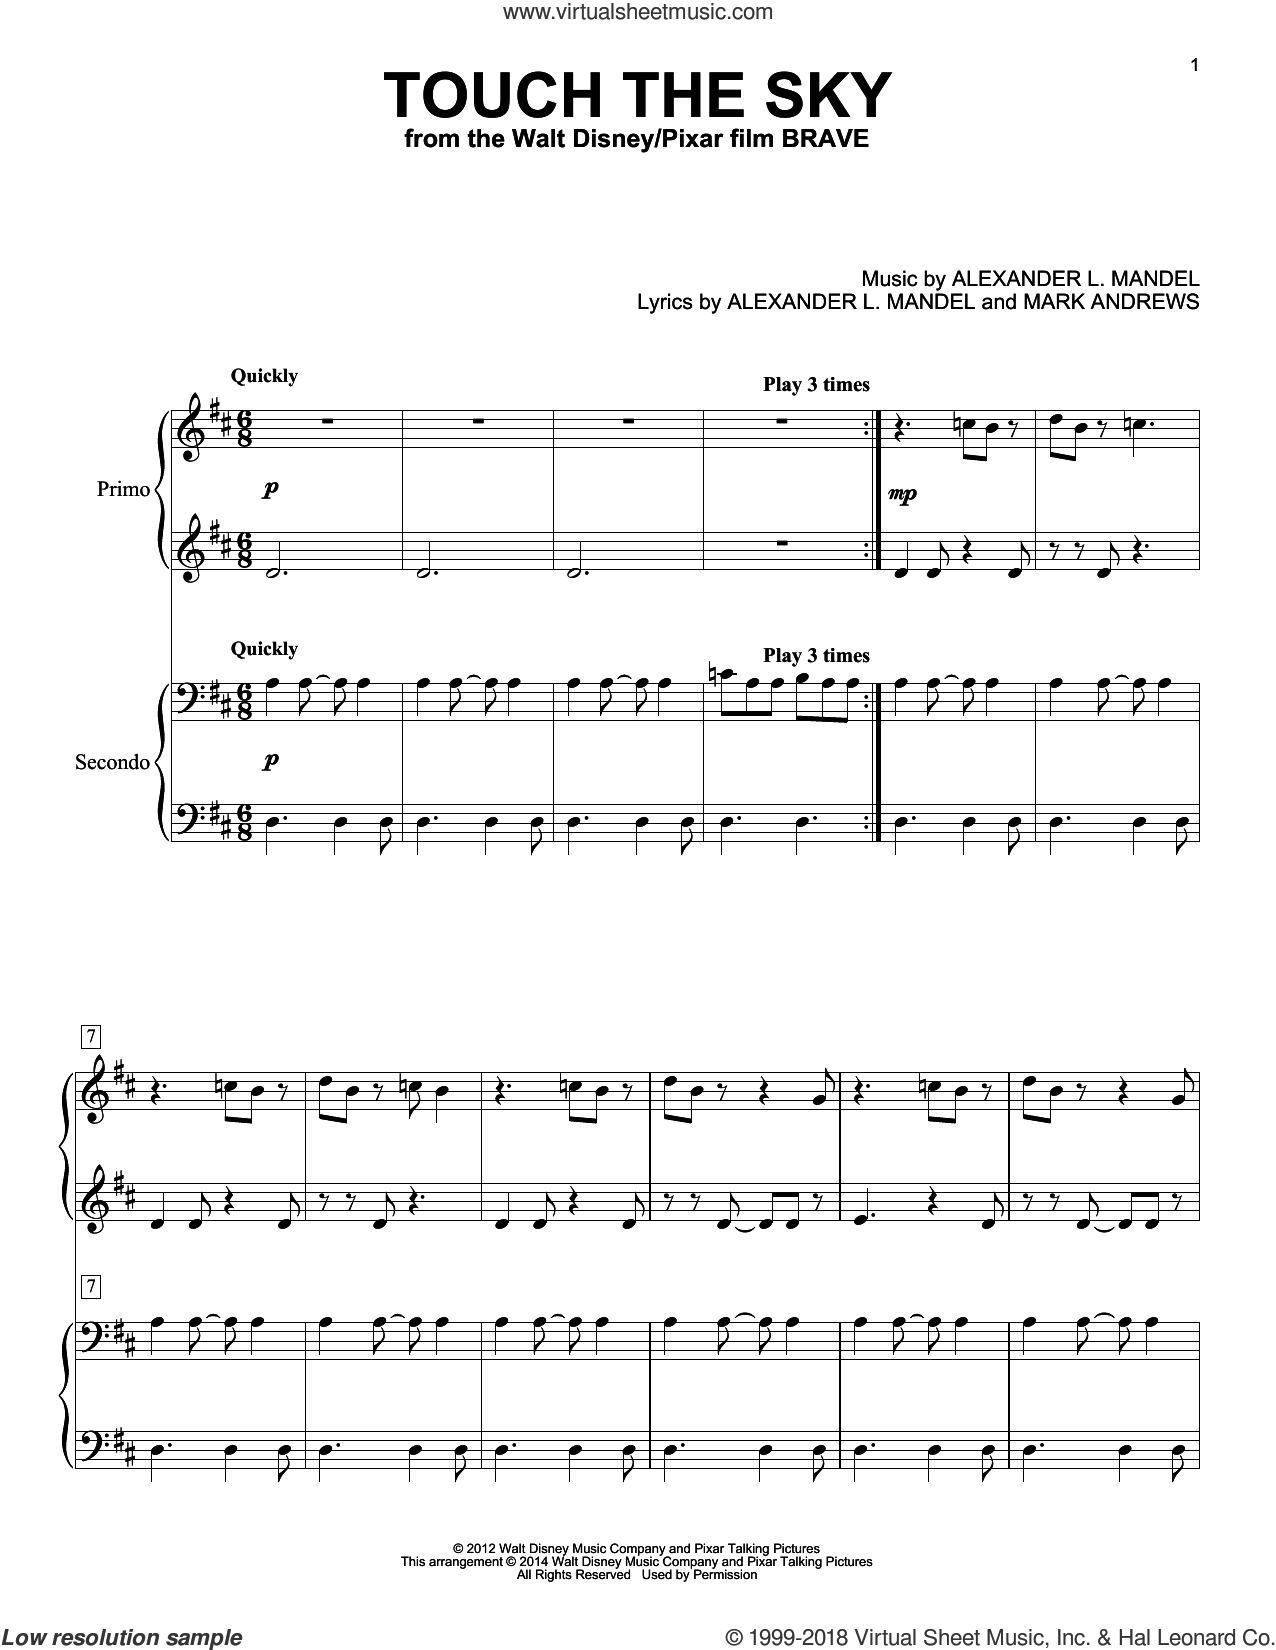 Touch The Sky (From Brave) sheet music for piano four hands by Julie Fowlis, Alexander L. Mandel and Mark Andrews, intermediate skill level